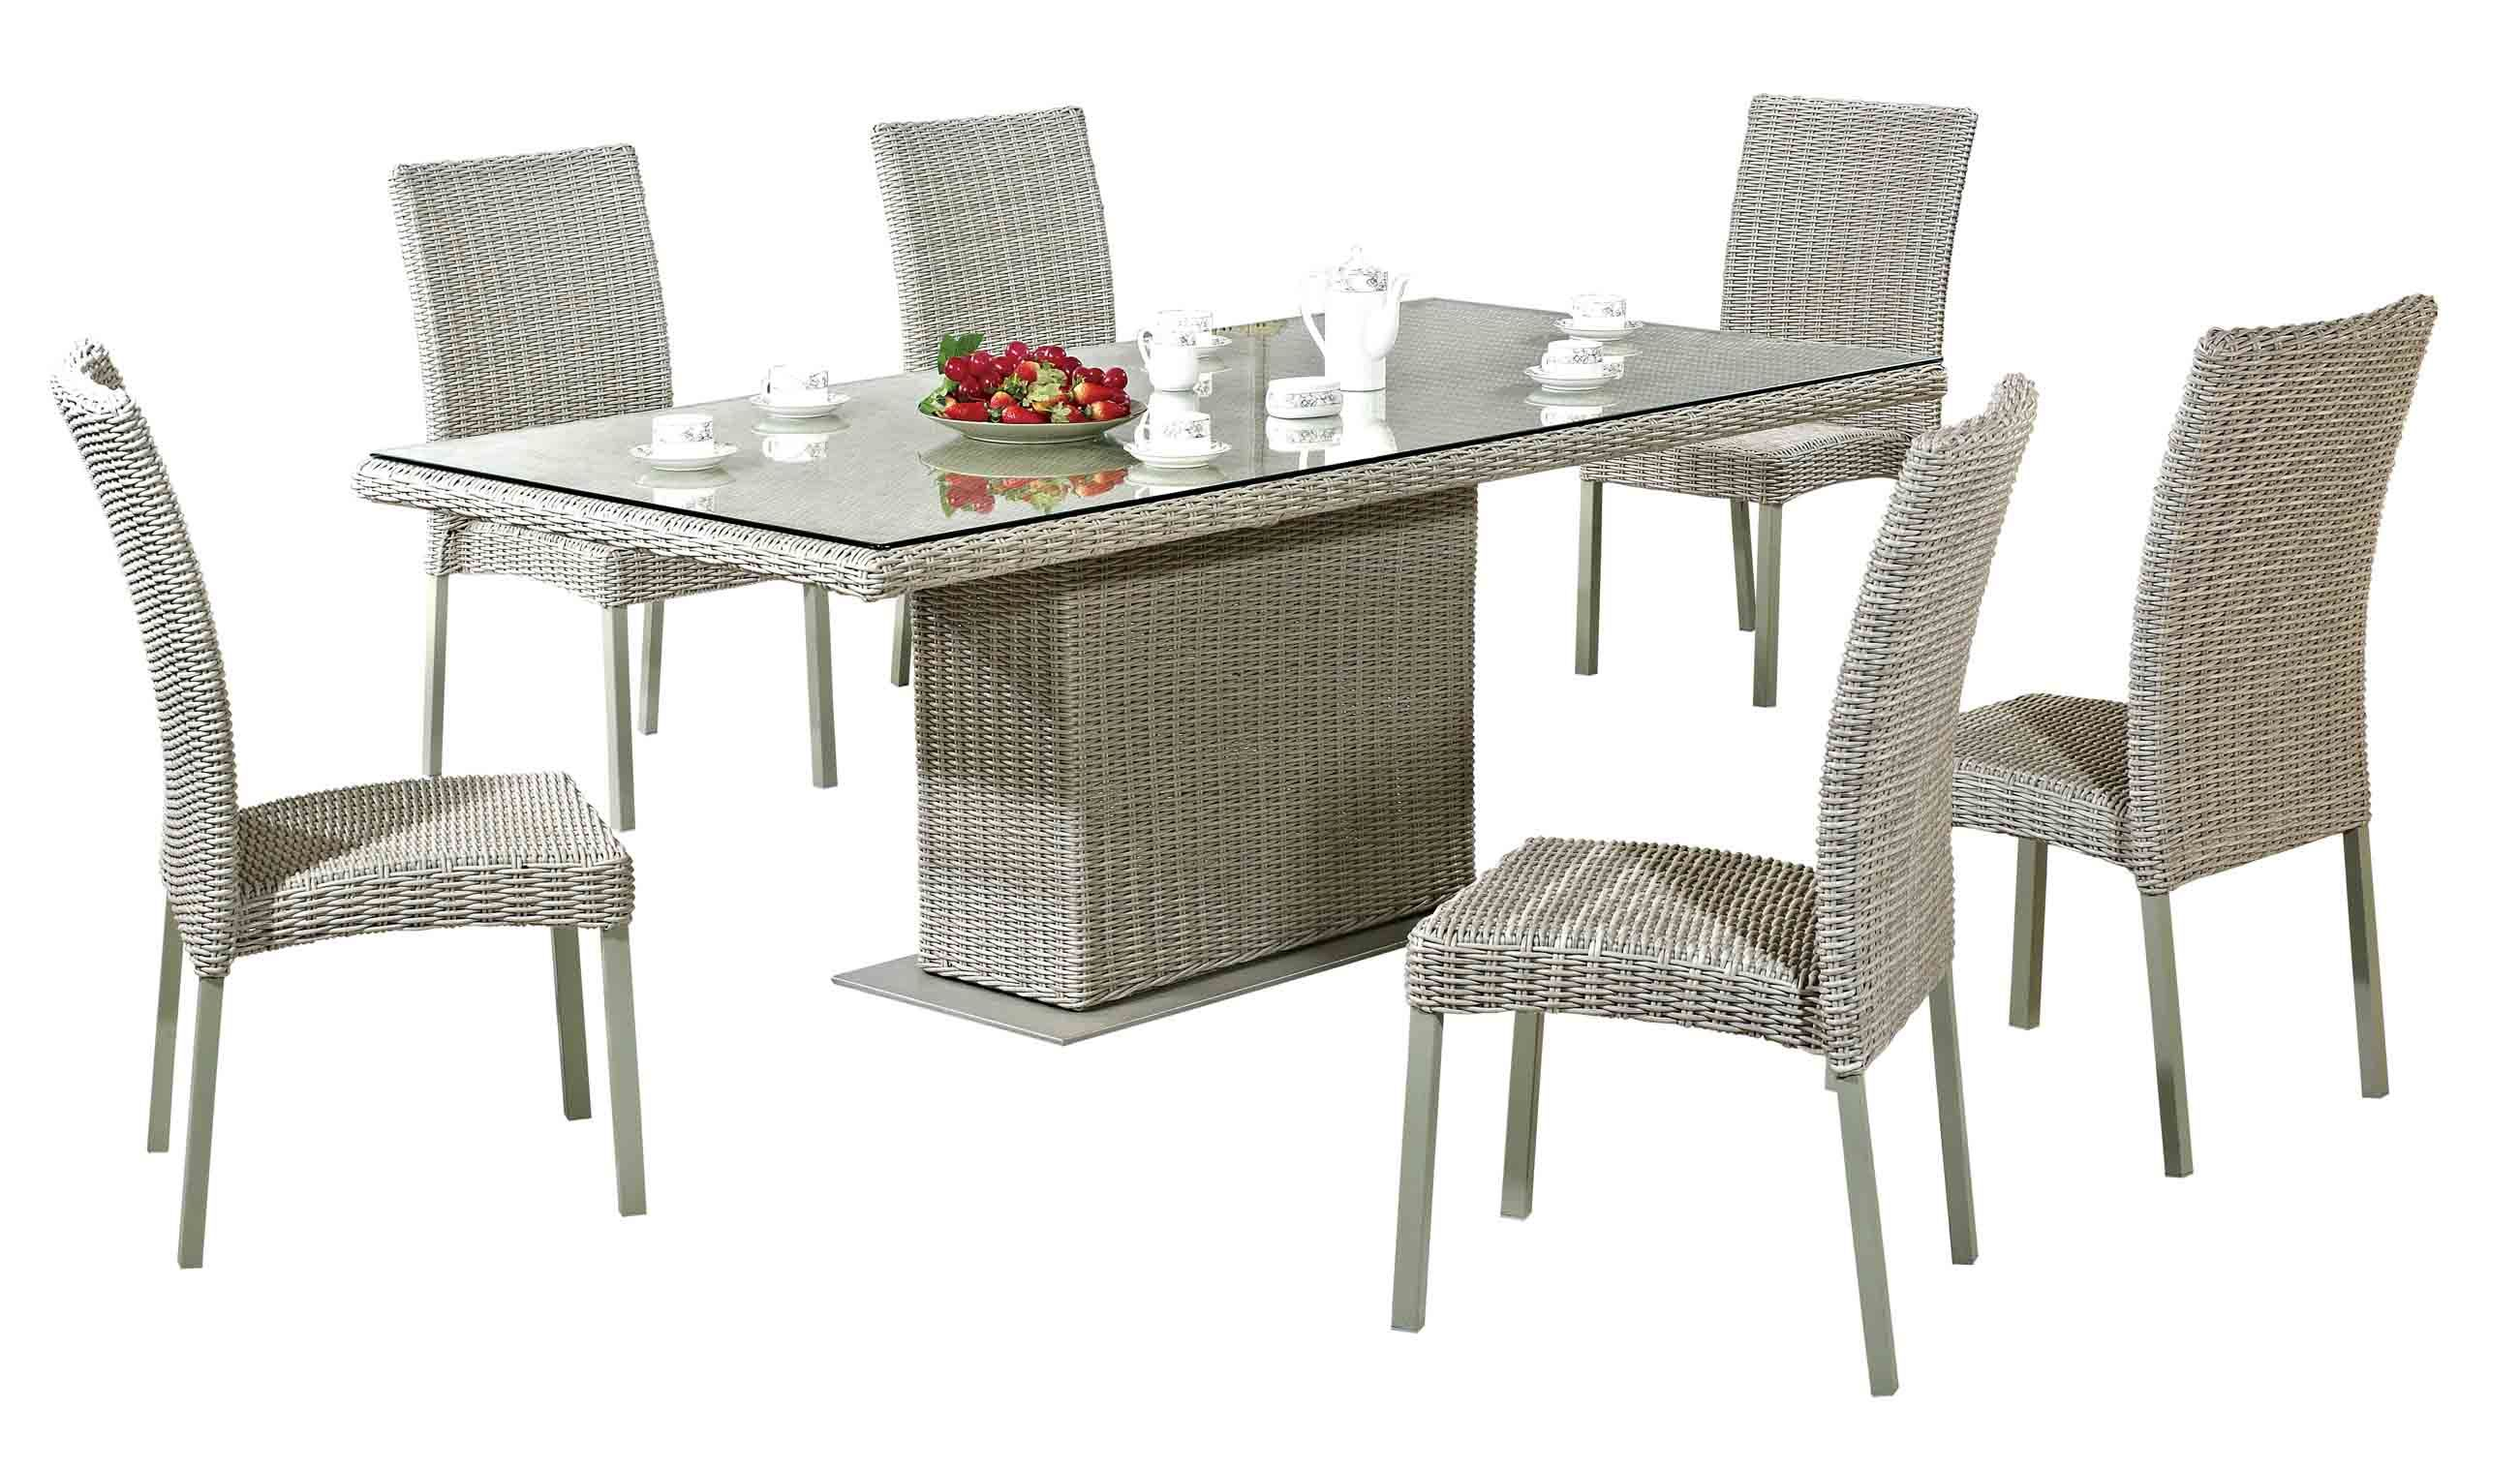 Home Furniture Dining Table Dining Chair Garden/Resin Wicker Furniture Outdoor Table and Chair pictures & photos